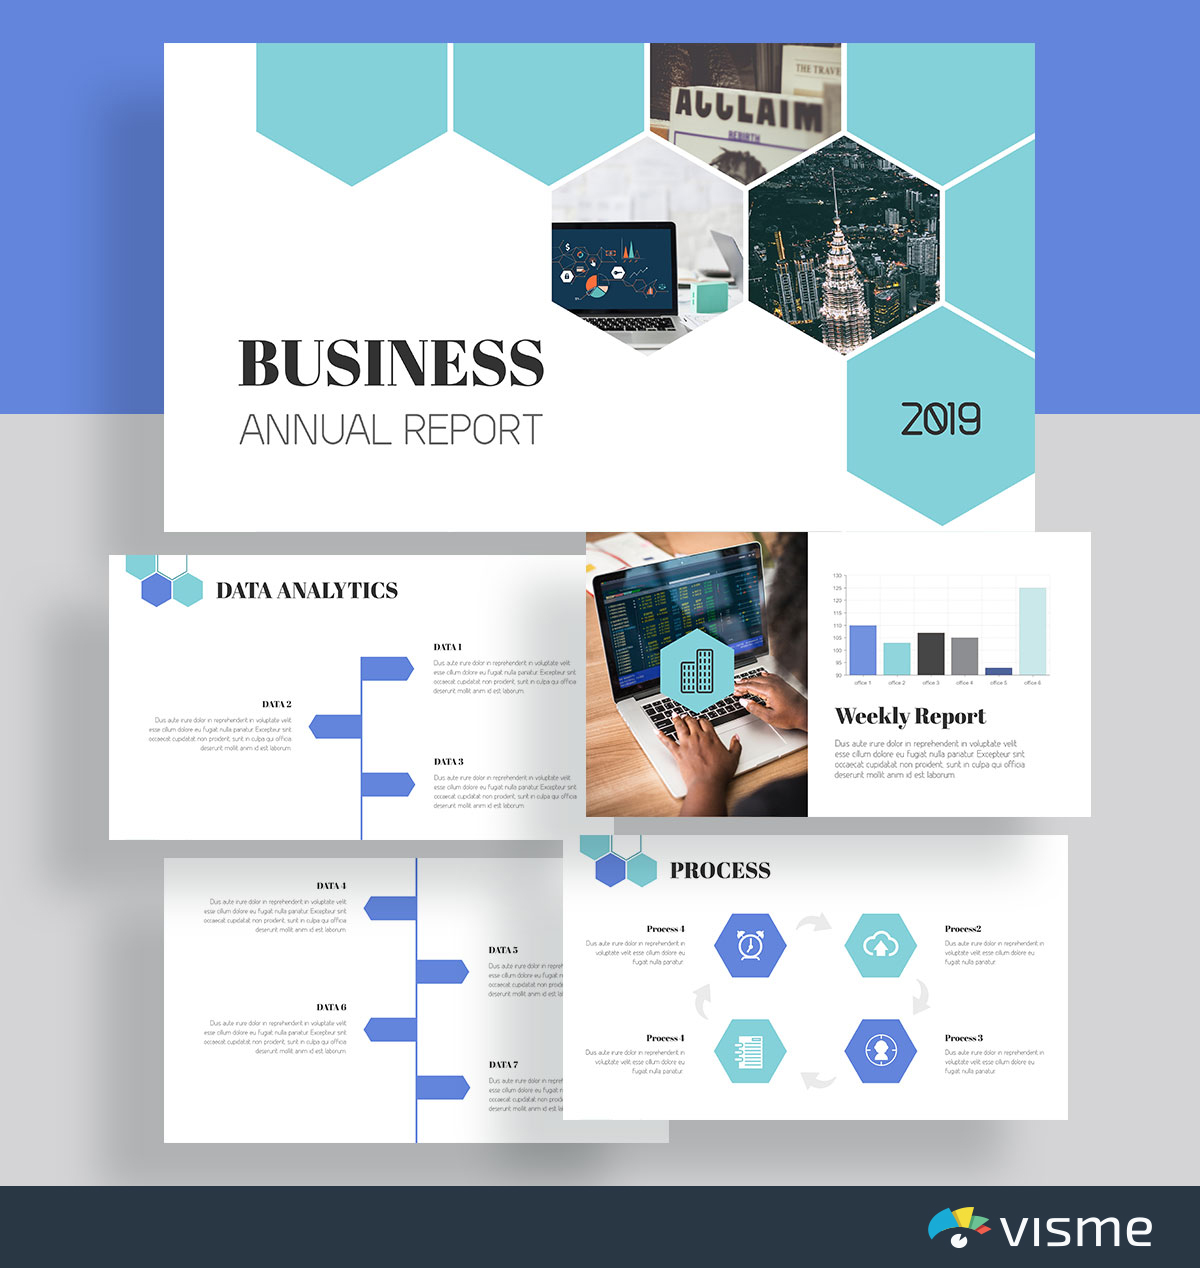 business presentation layout template - annual report